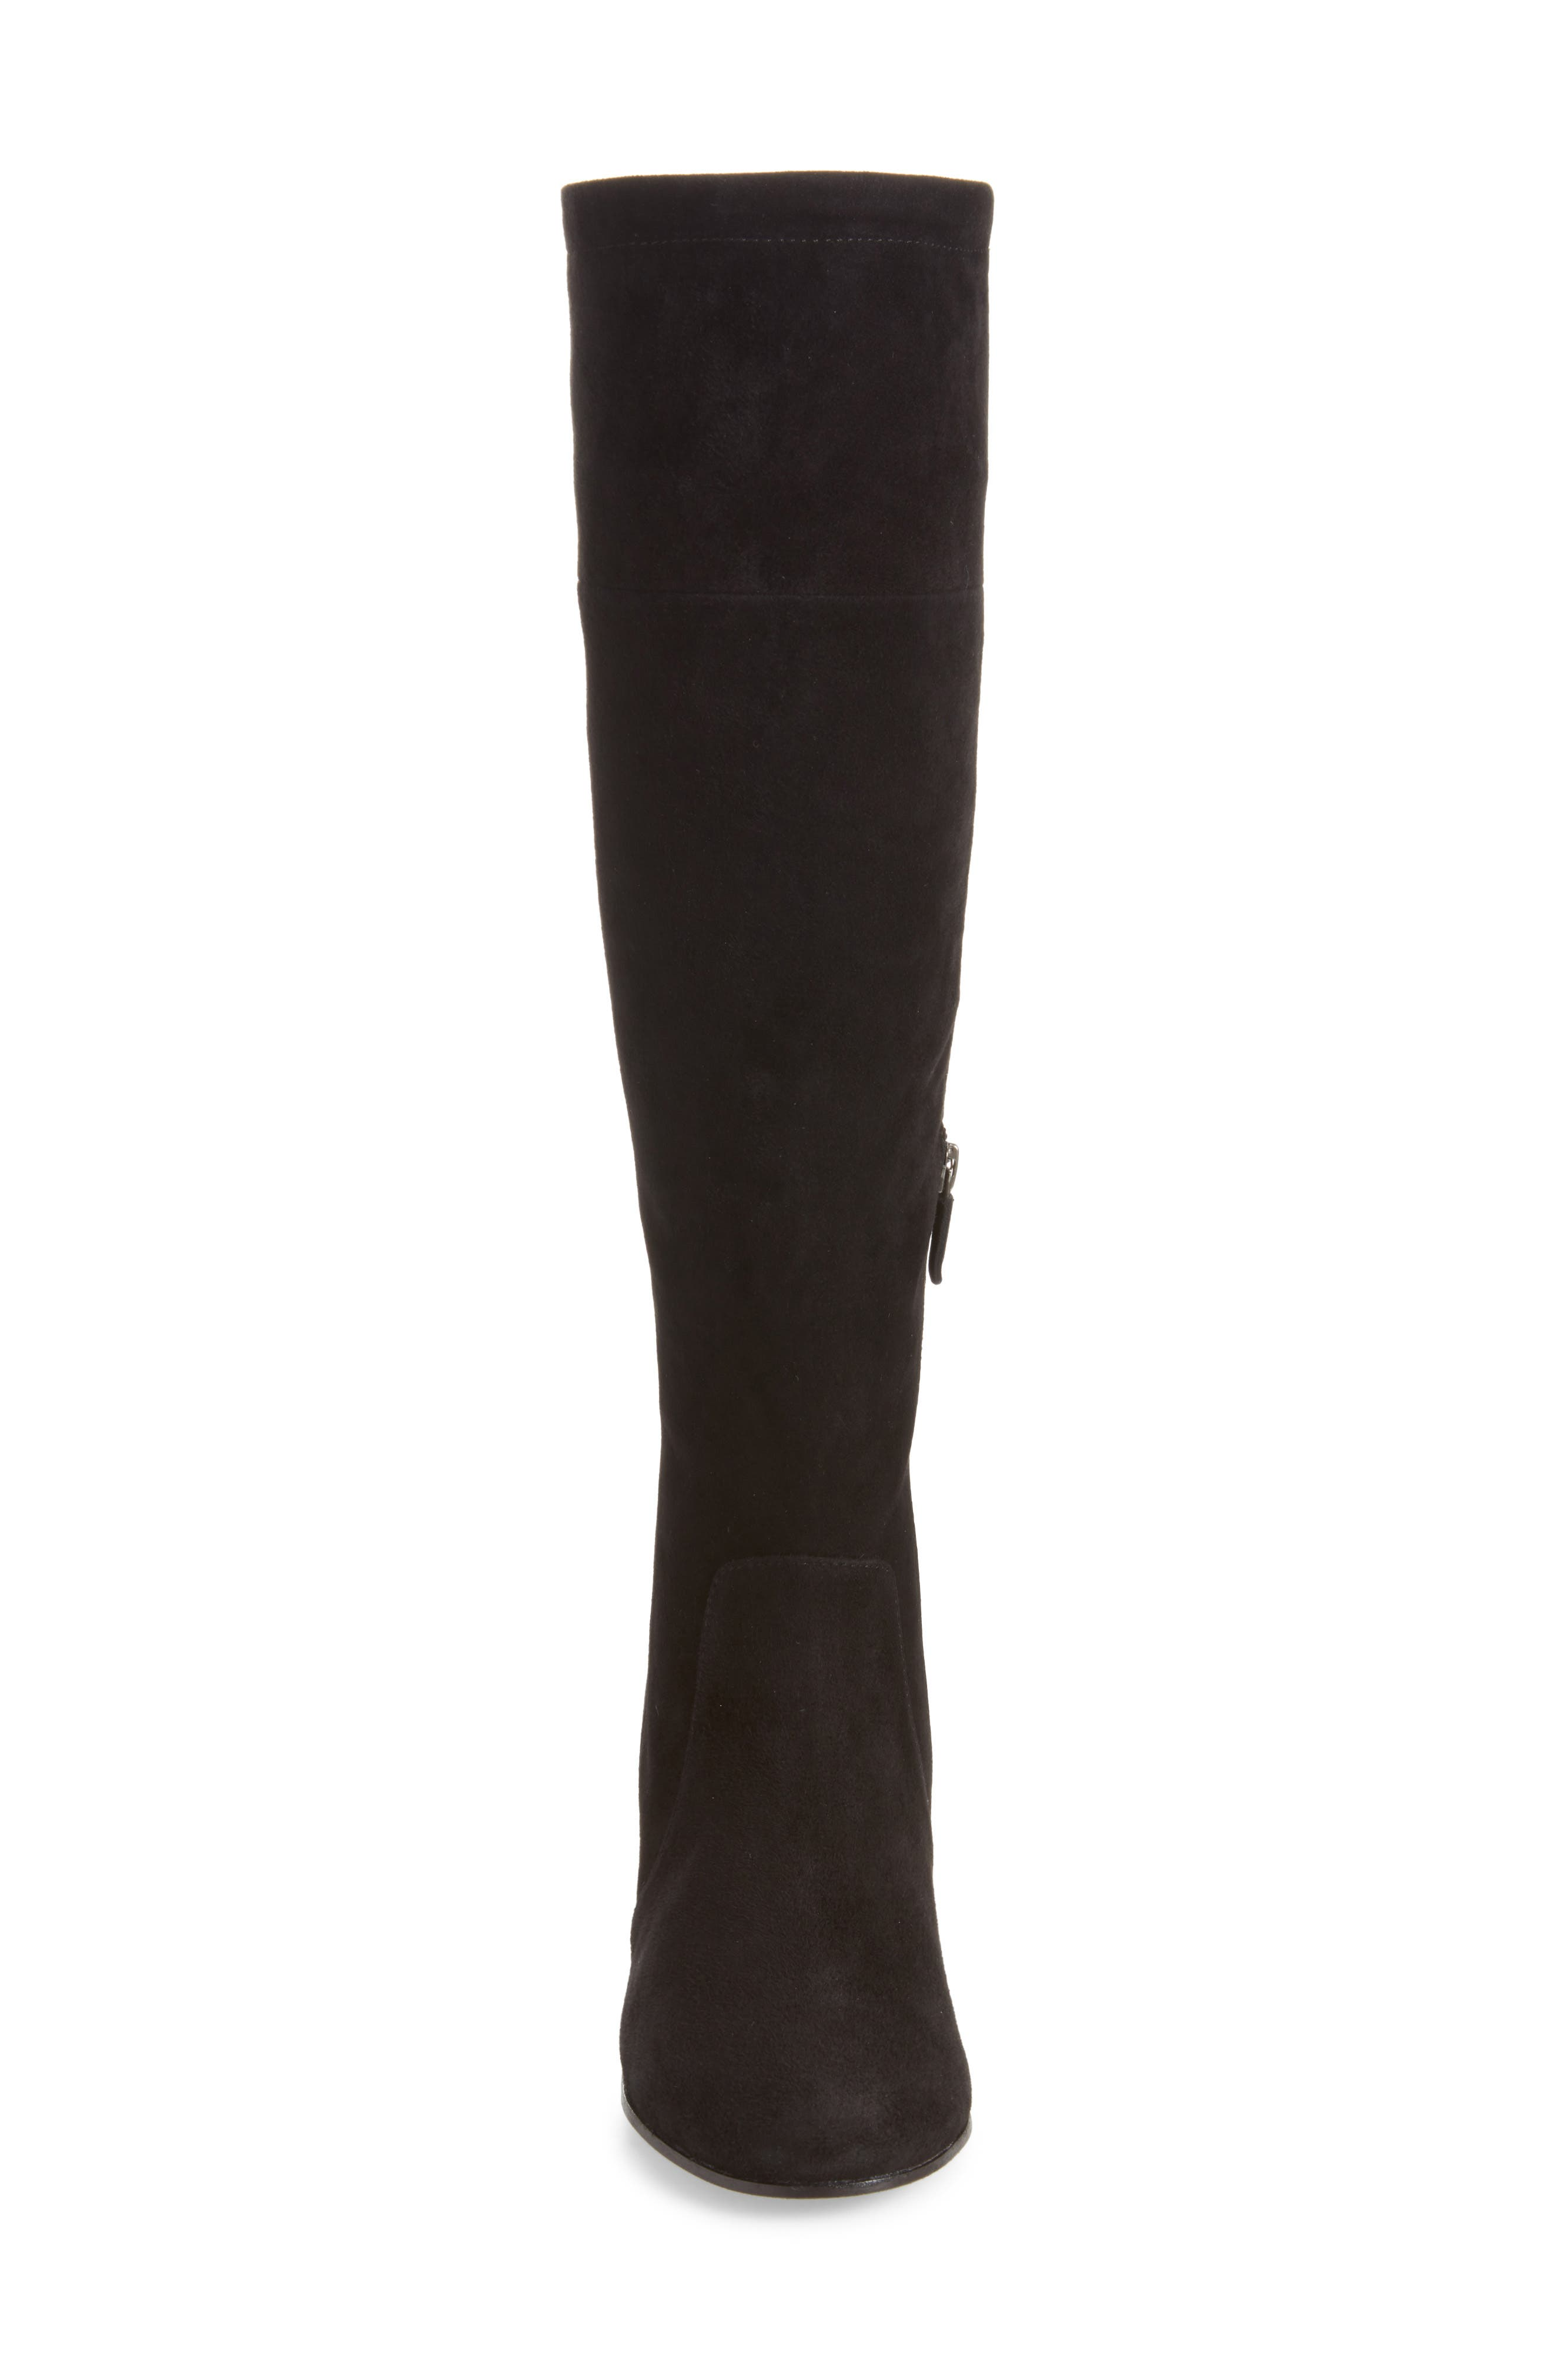 Knee High Boot,                             Alternate thumbnail 4, color,                             Black Suede